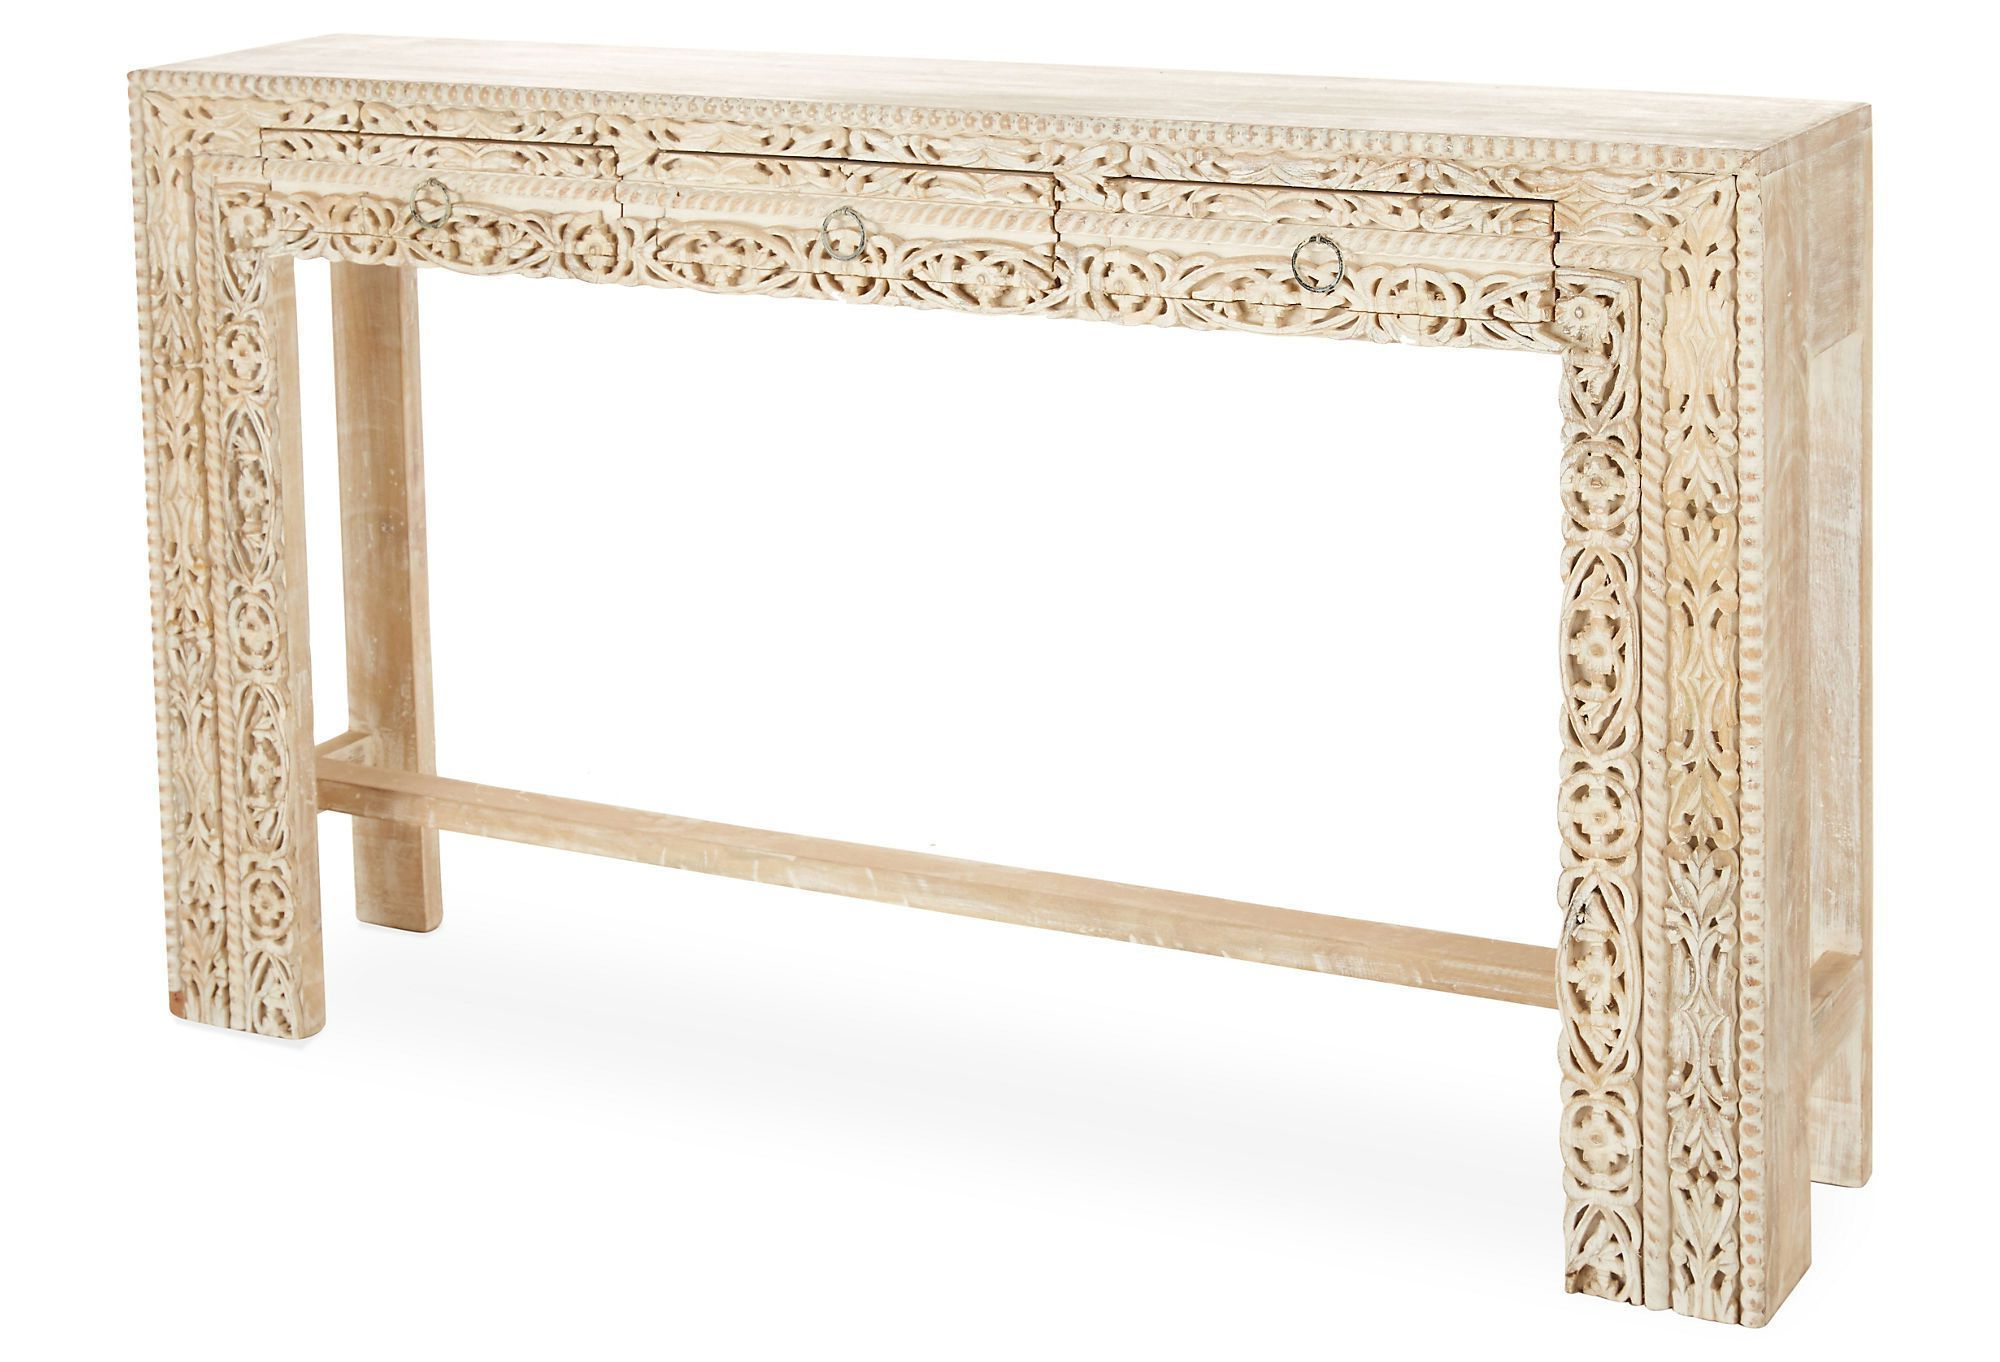 Moroccan Decor Regarding Most Up To Date Hand Carved White Wash Console Tables (Gallery 13 of 20)